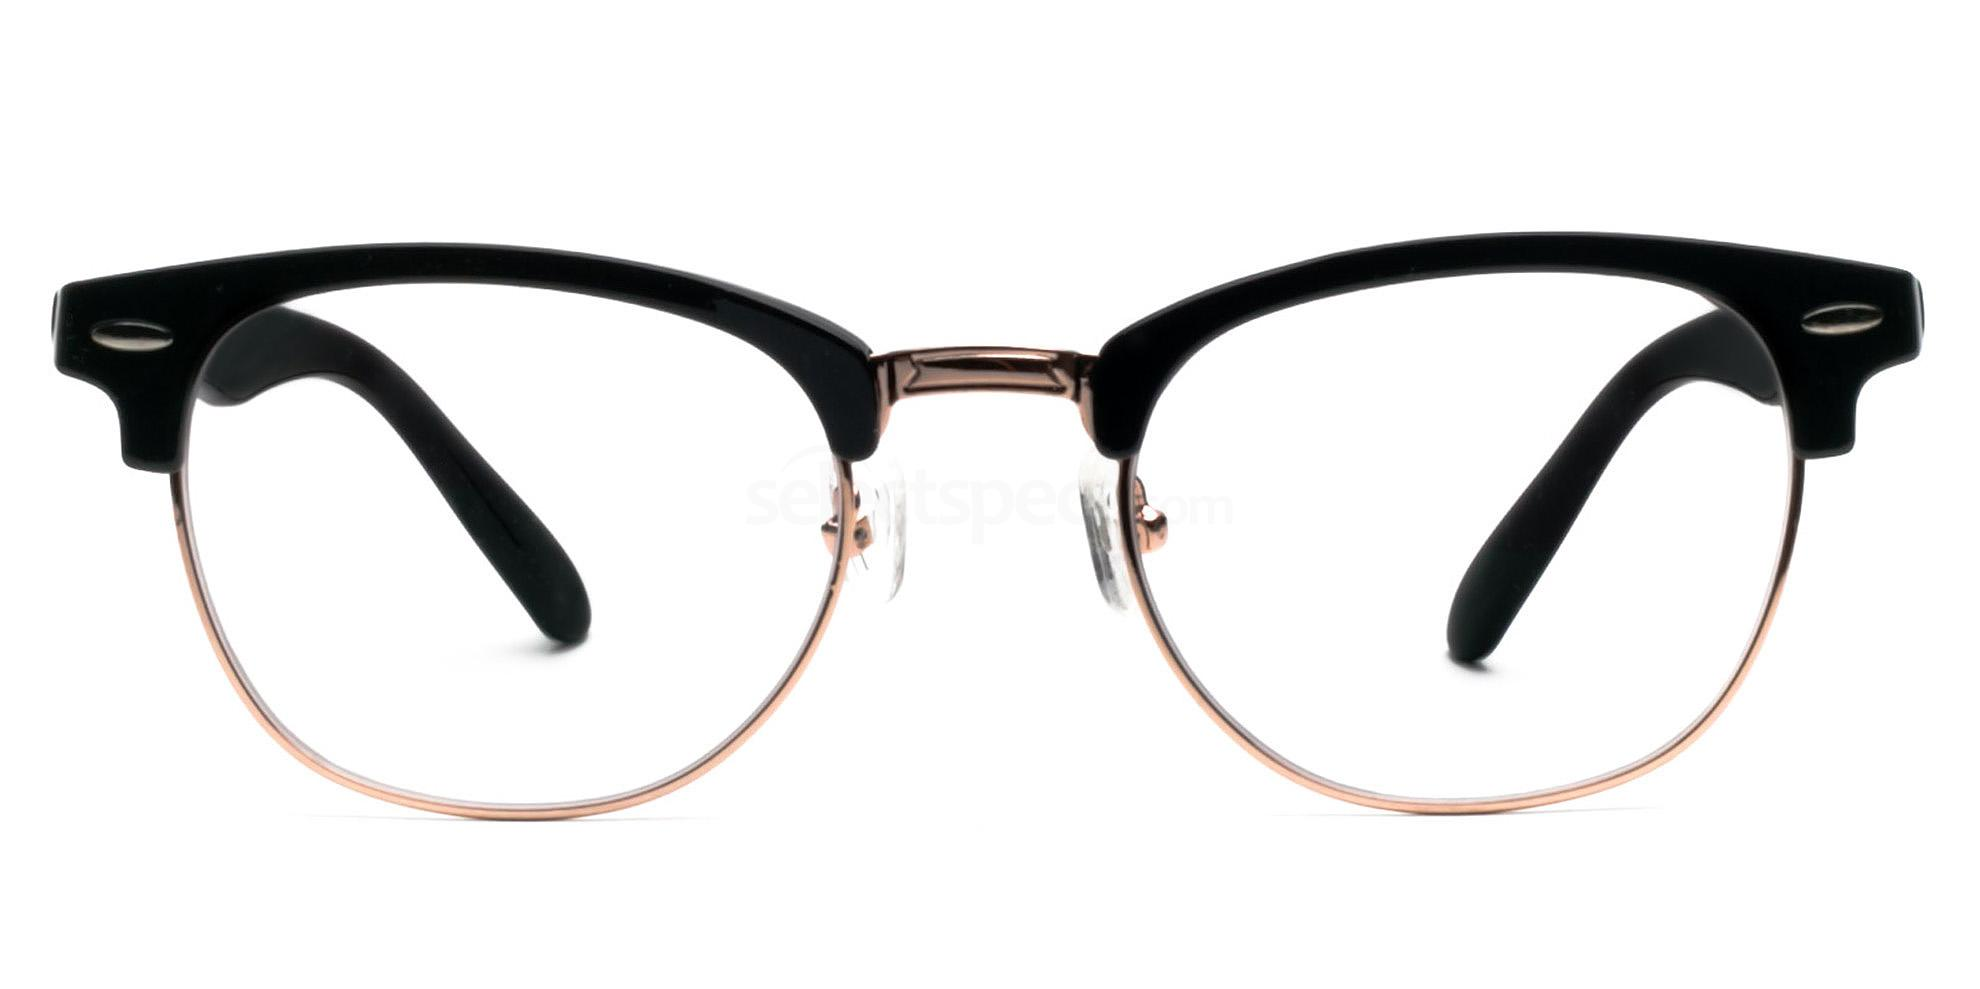 Hallmark-Clubmaster-Style-Prescription-Glasses-SelectSpecs